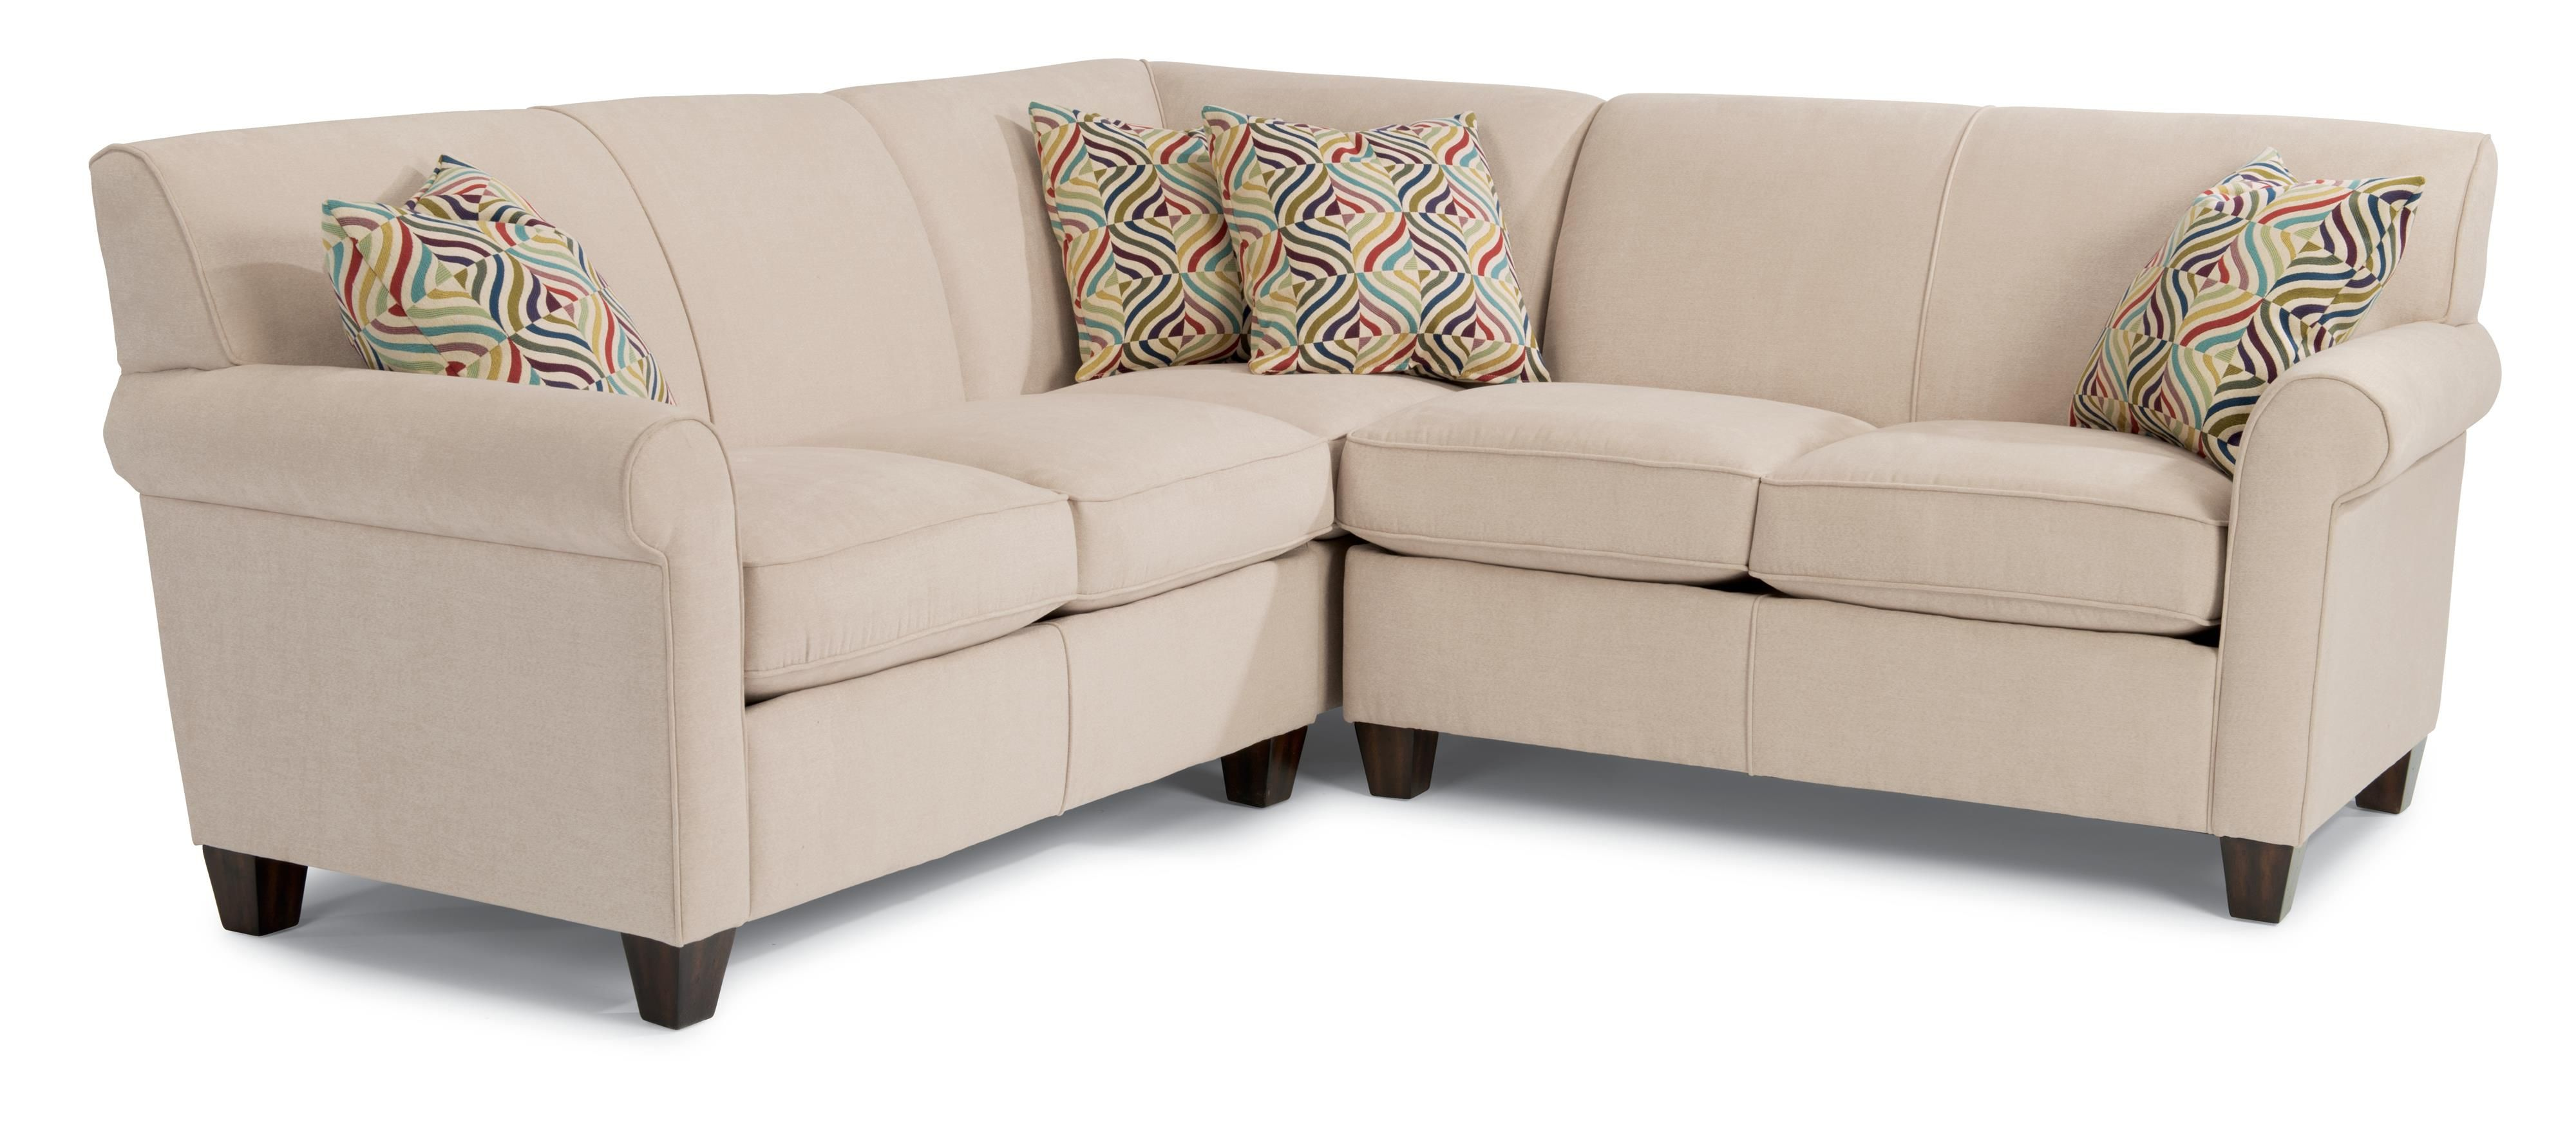 Put where recliner is Dana 3 Pc Corner Sectional Sofa by Flexsteel